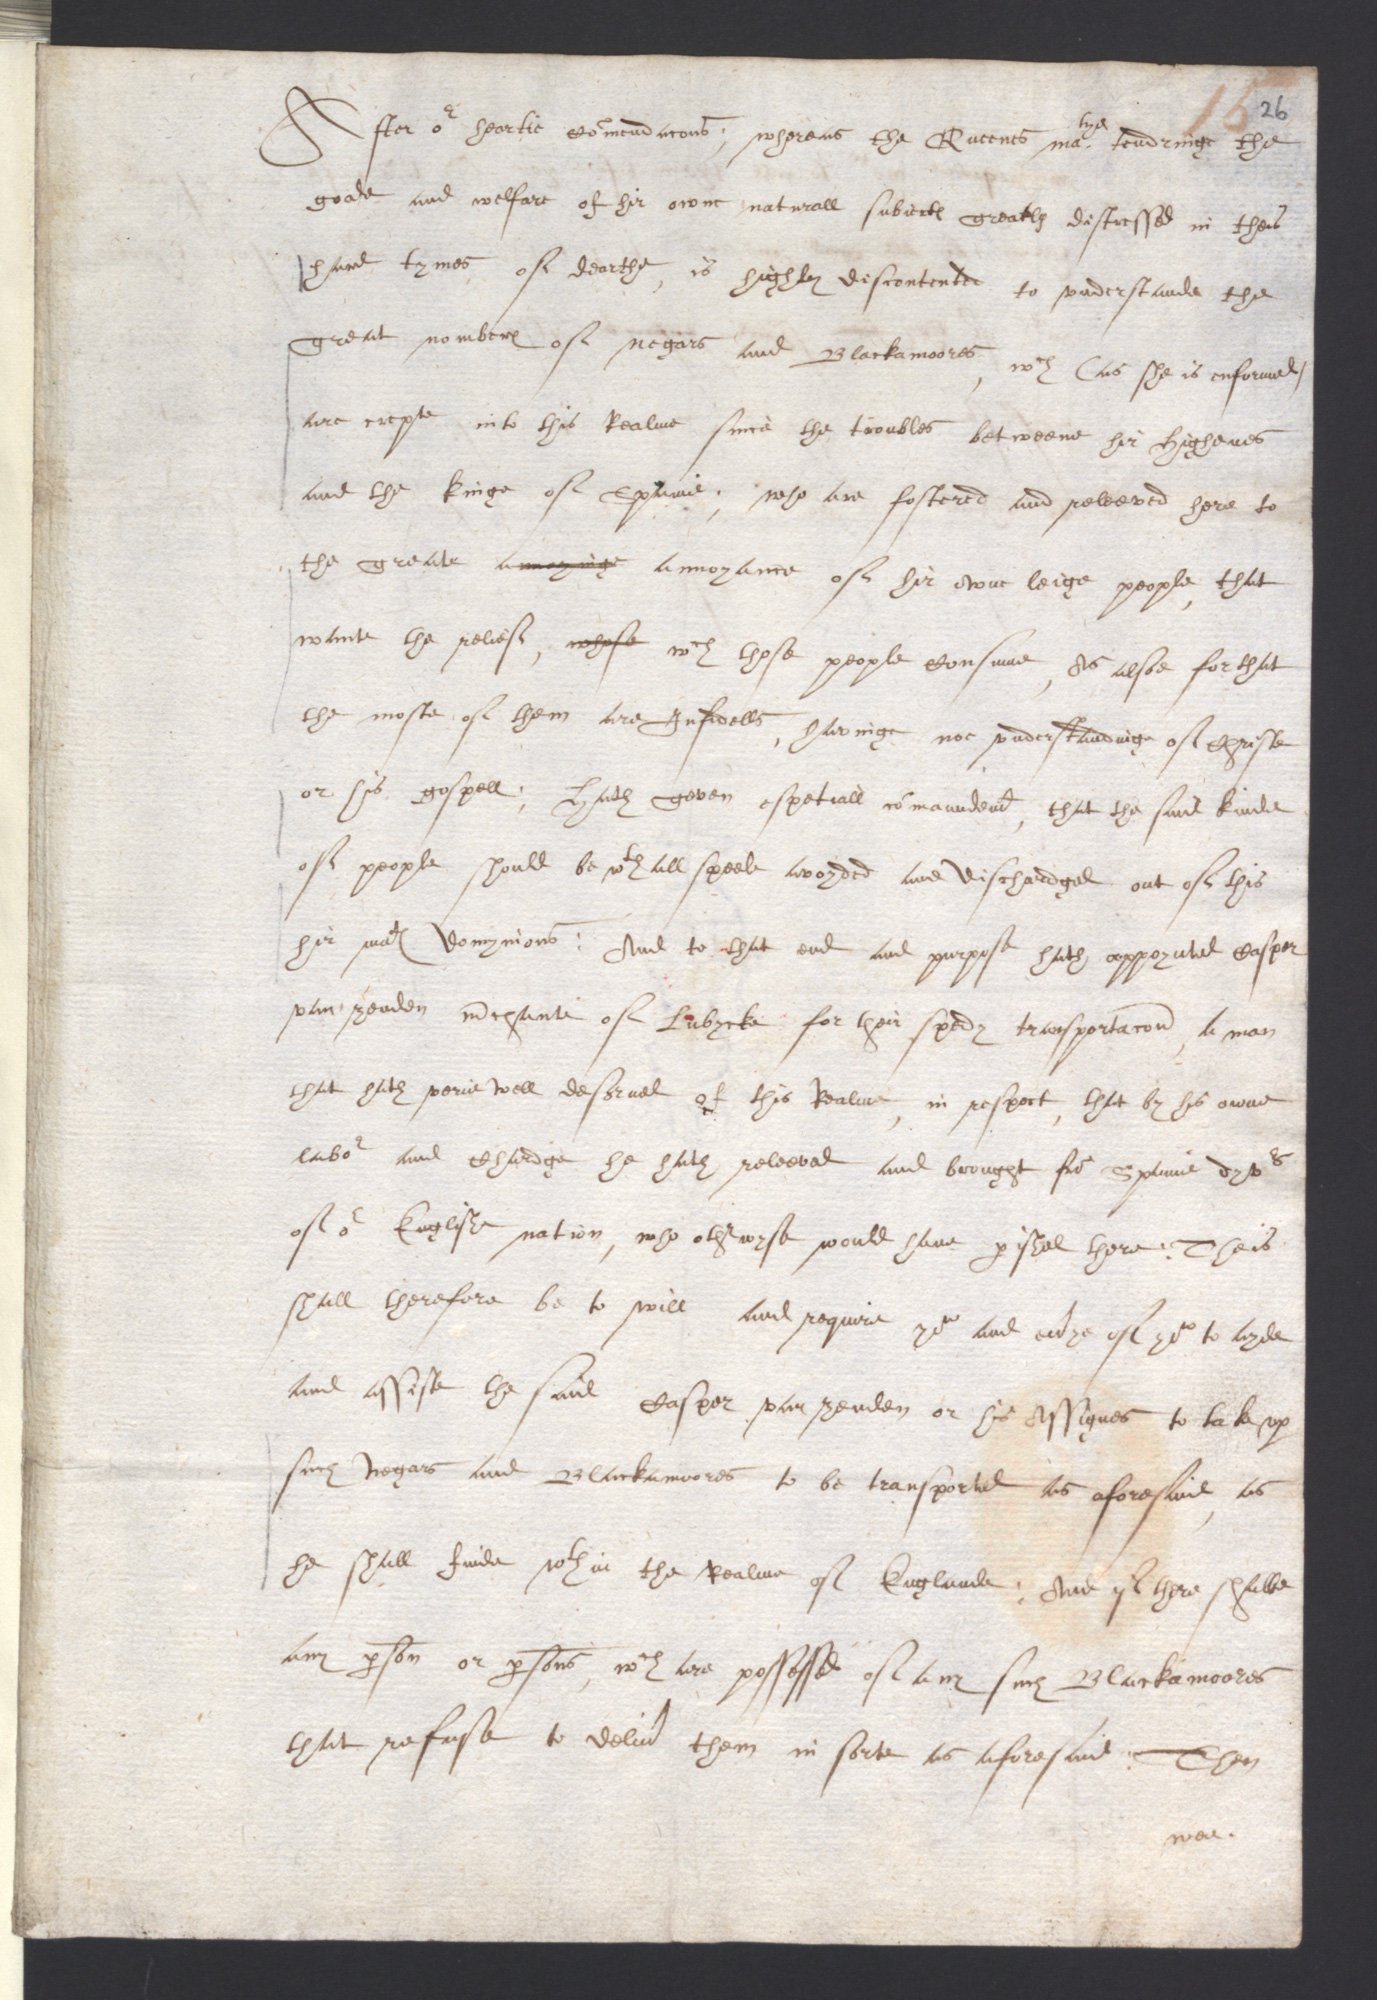 Draft proclamation on the expulsion of 'Negroes and Blackamoors', 1601